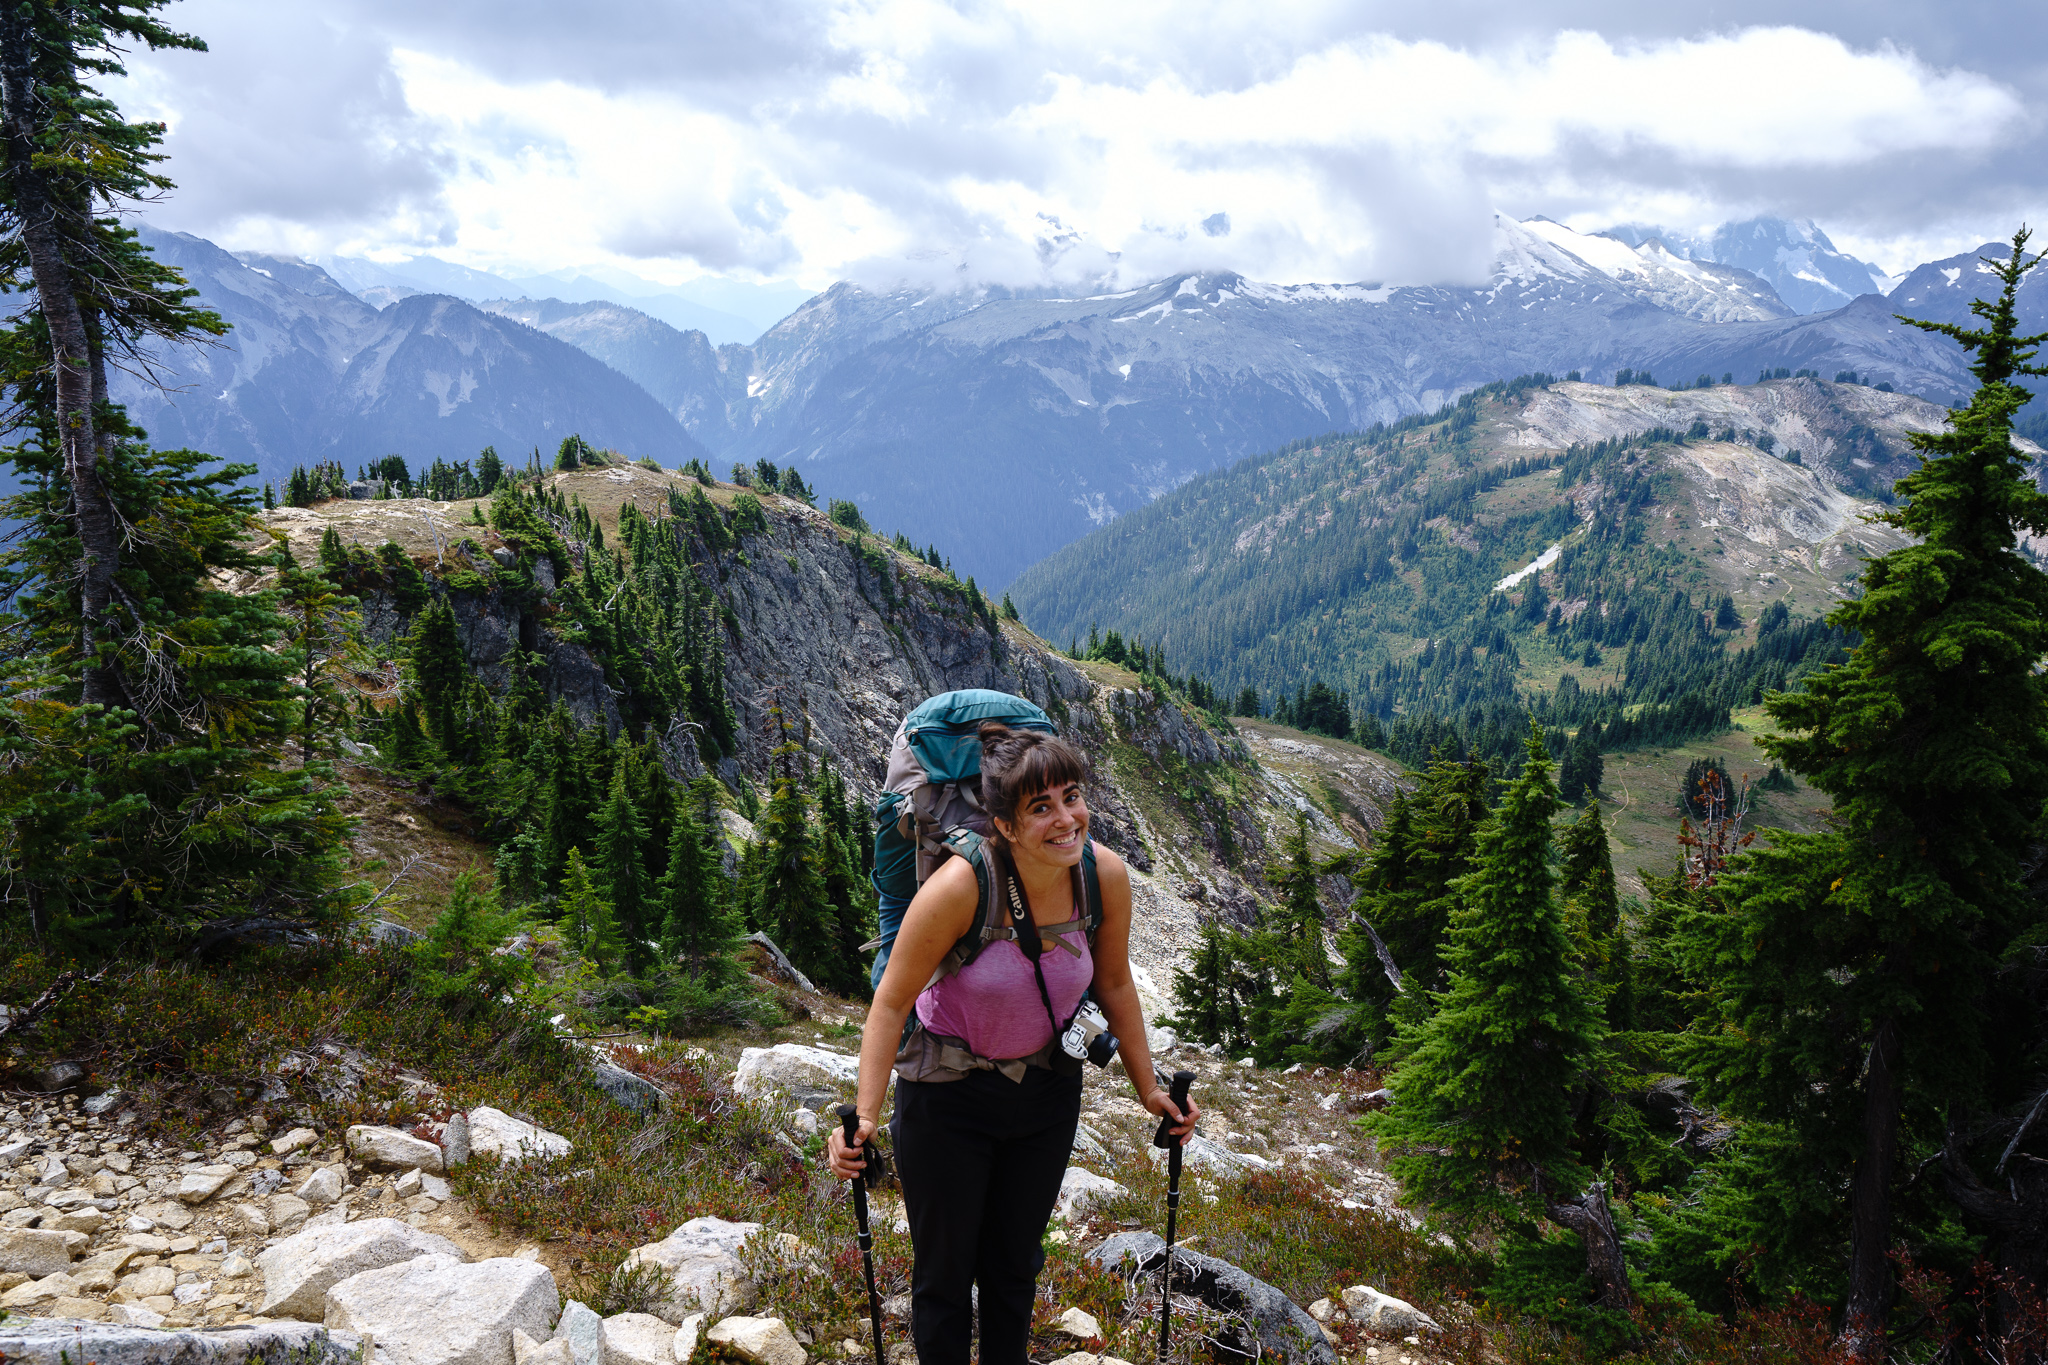 Did you know that trekking poles can double to help build a splint for a broken bone? I learned this helpful tip in my first aid course and so much more.